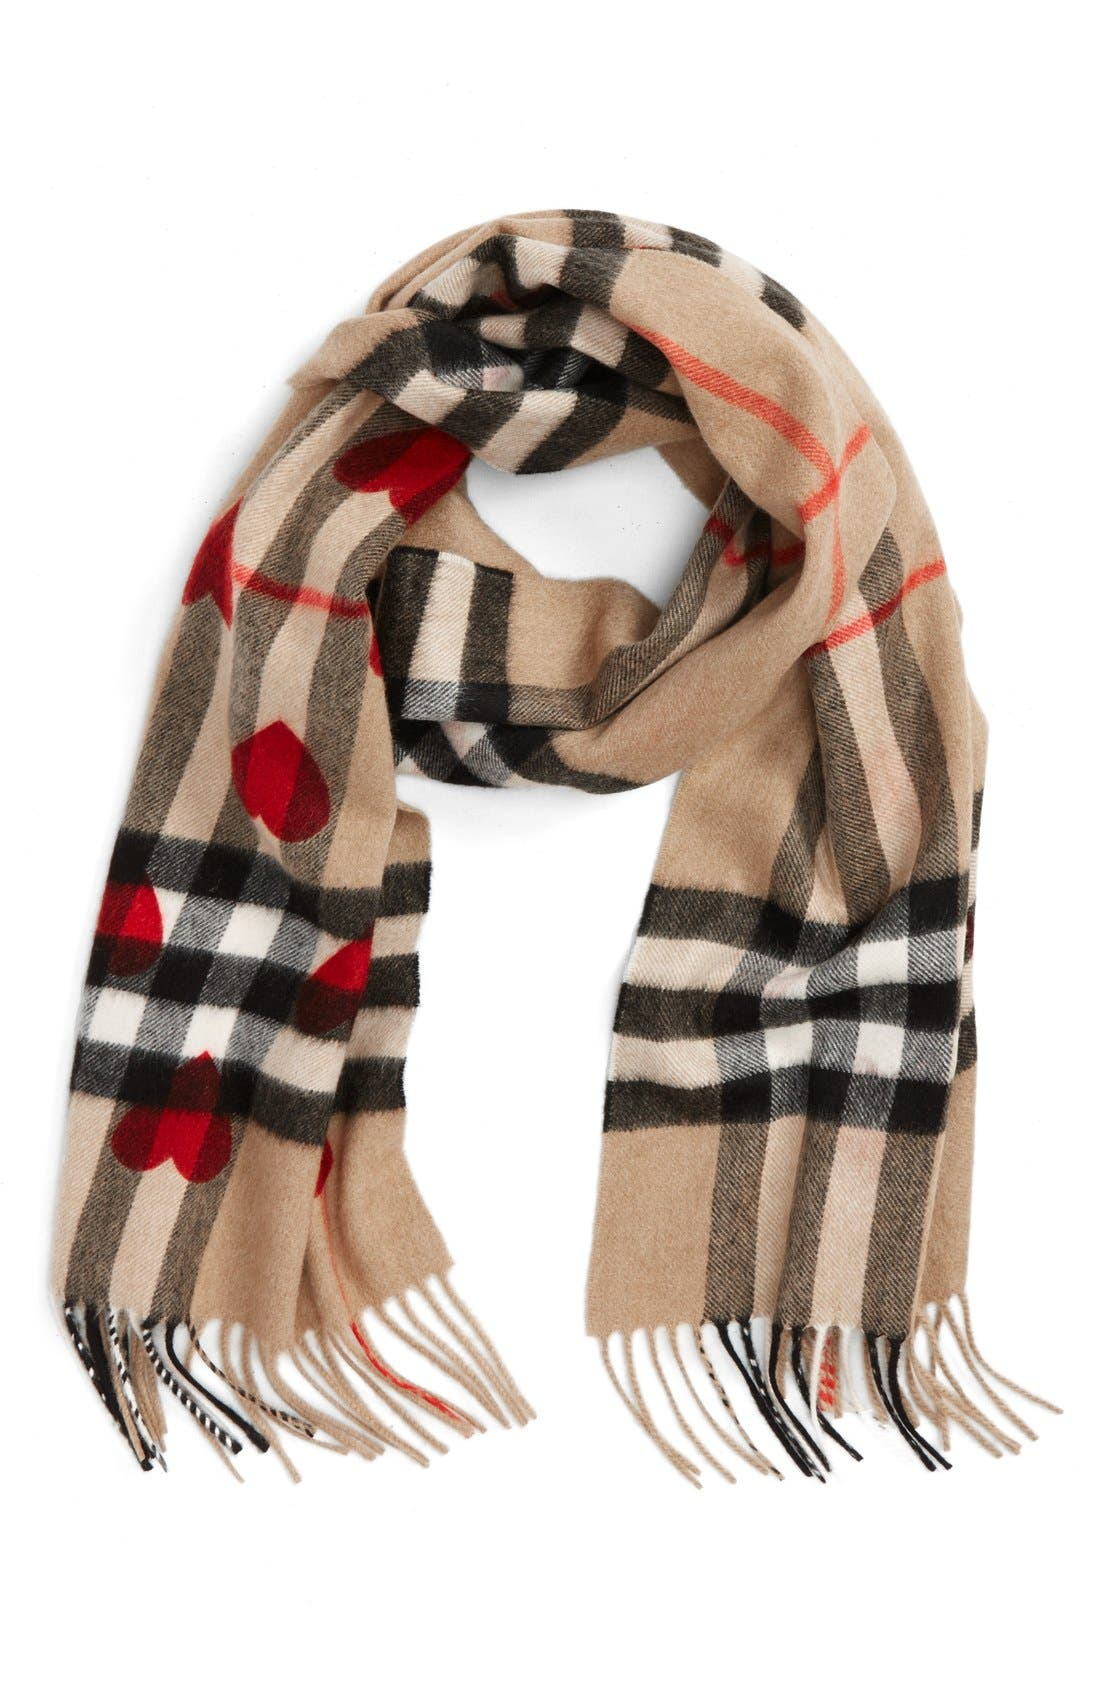 Burberry Heart & Giant Check Fringed Cashmere Scarf